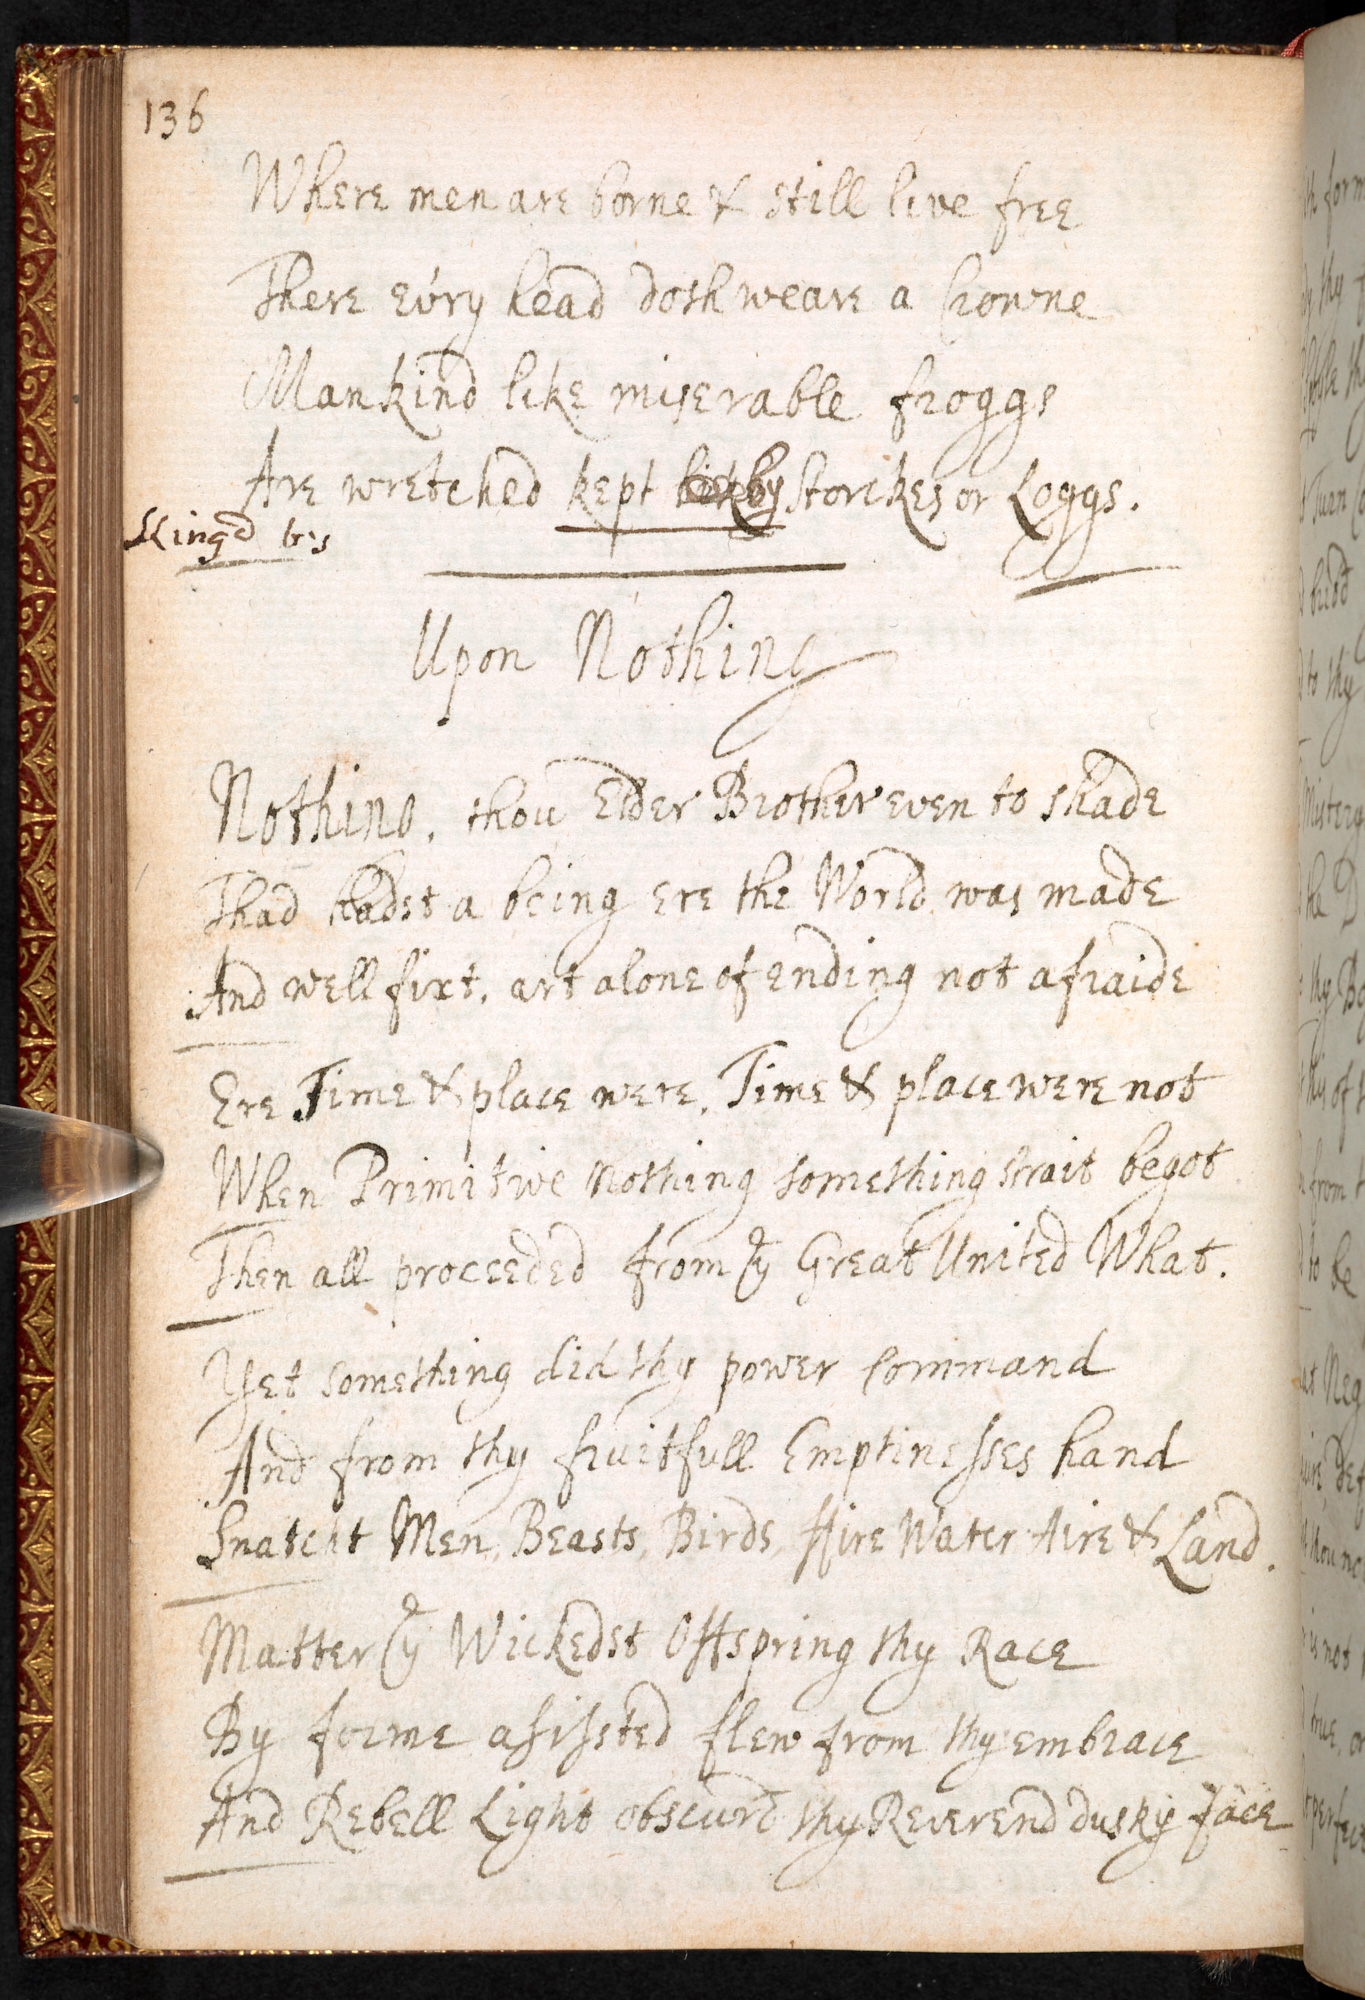 Miscellany of poems by the Earl of Rochester